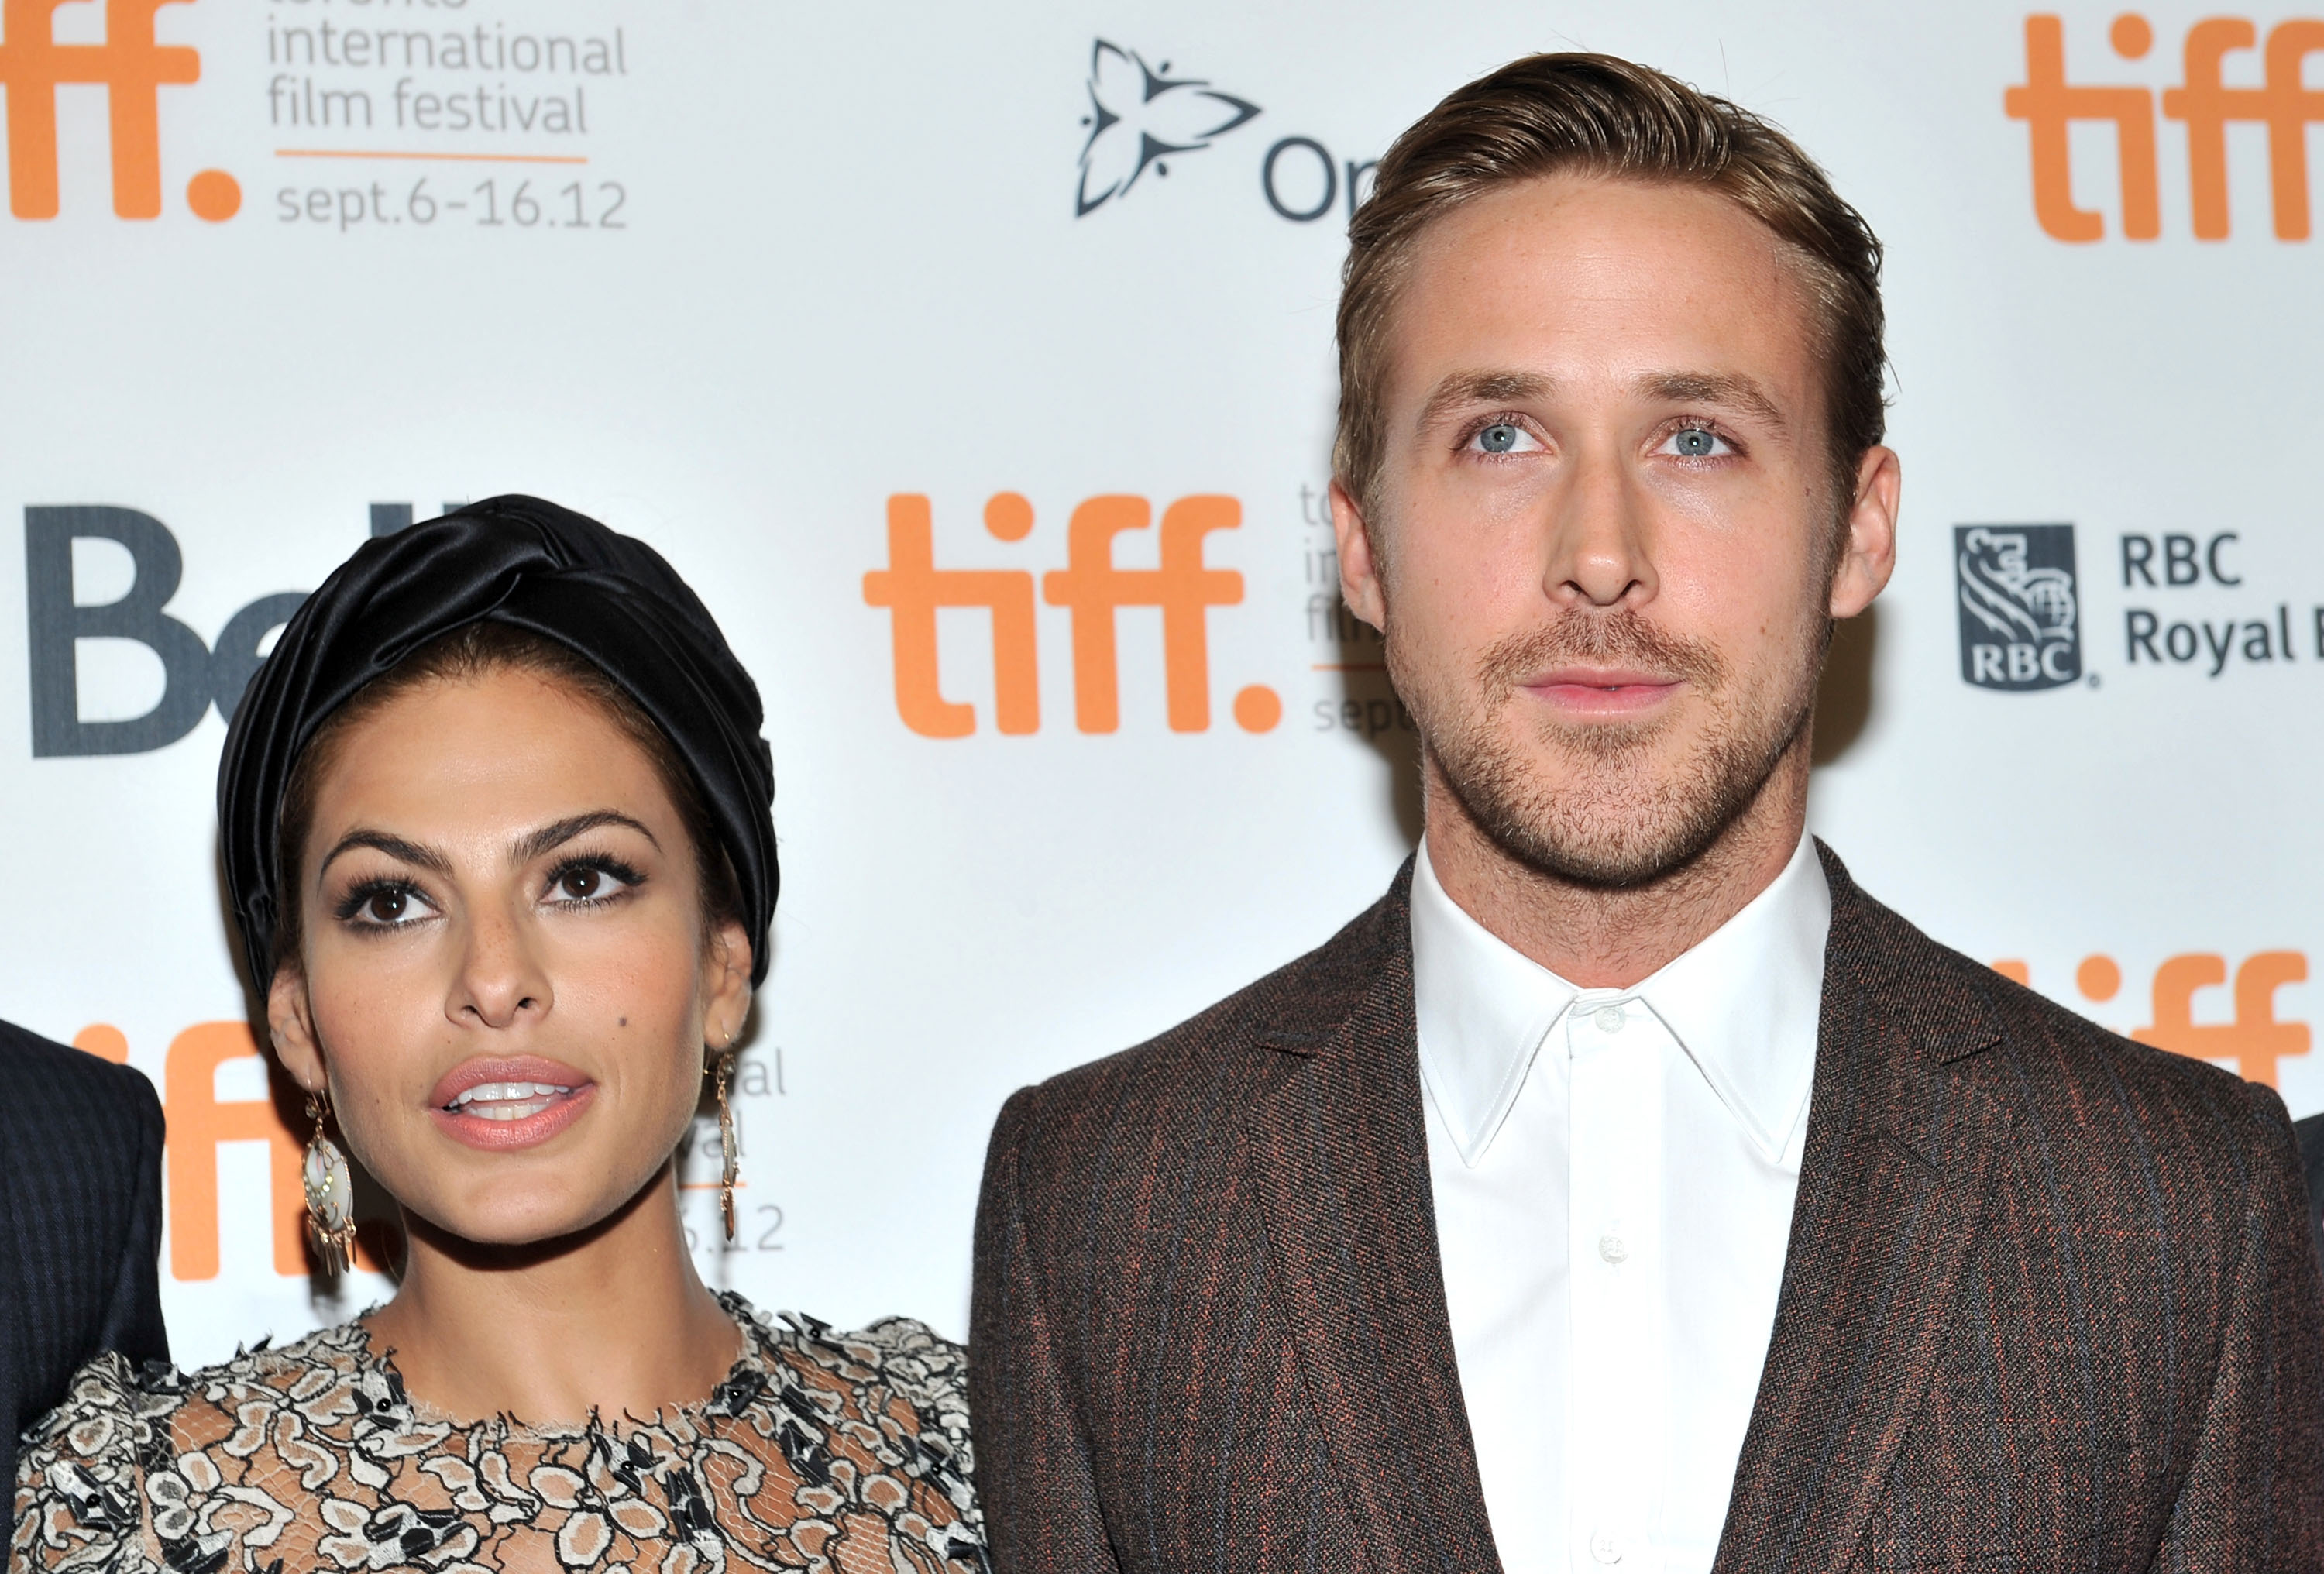 Westlake Legal Group d7a19dbc-Eva-Mendes-Ryan-Gosling Eva Mendes and Ryan Gosling expand their family Jeremy Nifras fox-news/entertainment/celebrity-news fox news fnc/entertainment fnc d8a933a3-98ad-5183-aecd-2135cda64aaf article